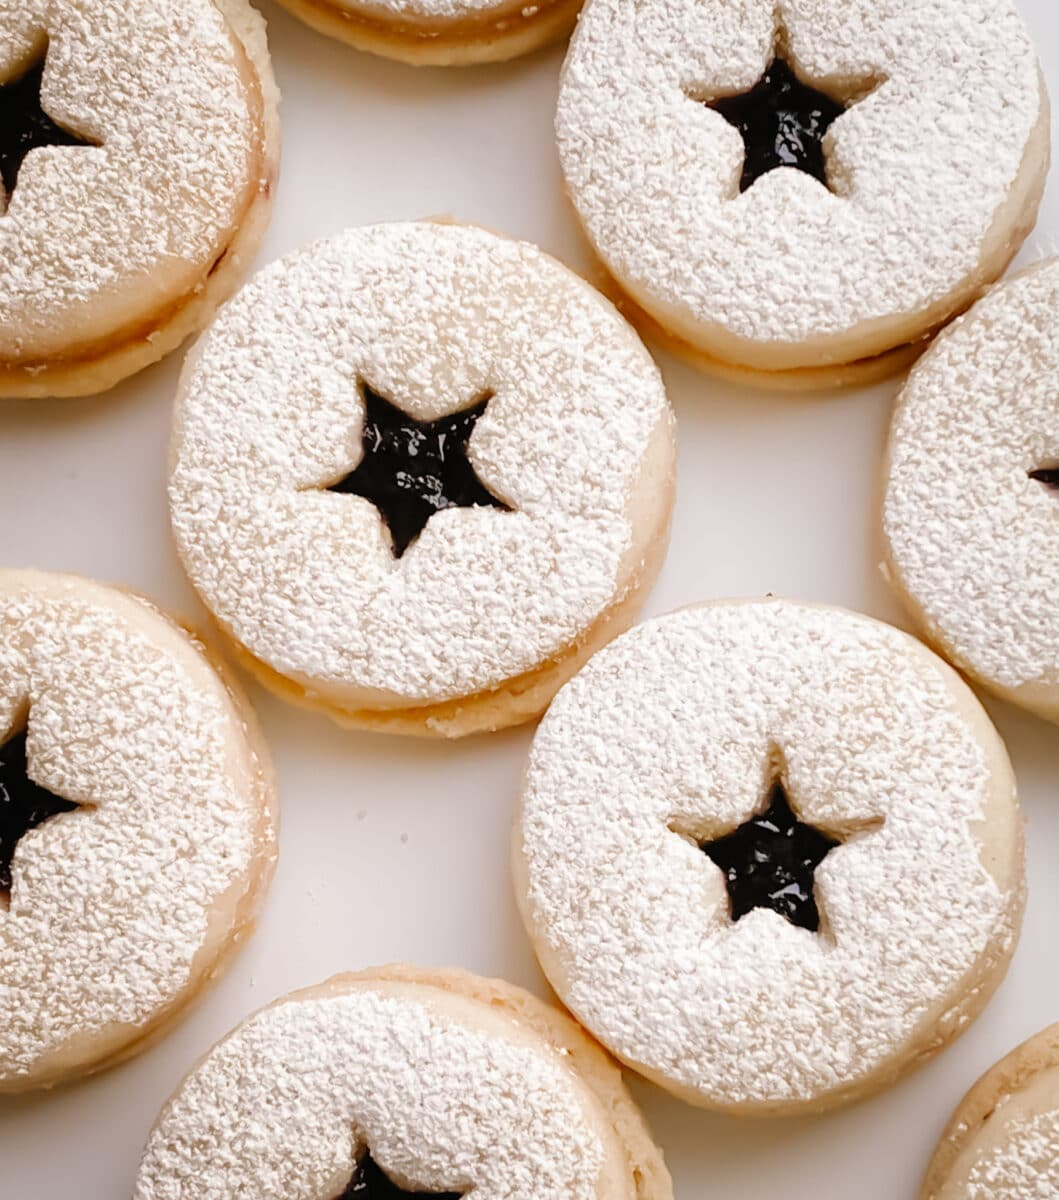 blueberry jam linzer cookies with a dusting of power sugar, a variety of cookies laid out